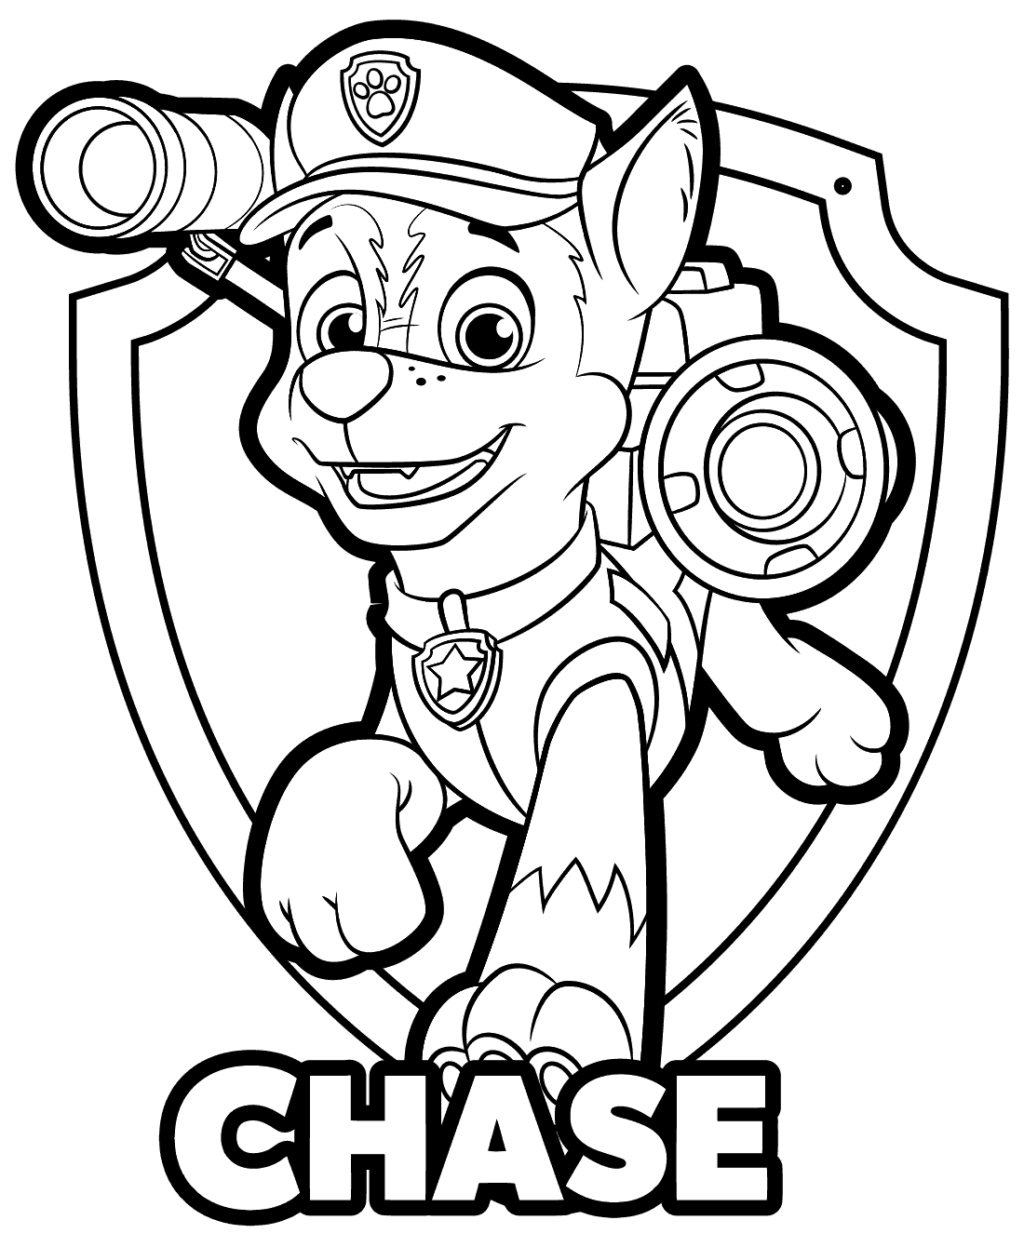 Paw Patrol Coloring Pages Marshall Coloring Book World Paw Patrol Super Pups Coloring Pages How To